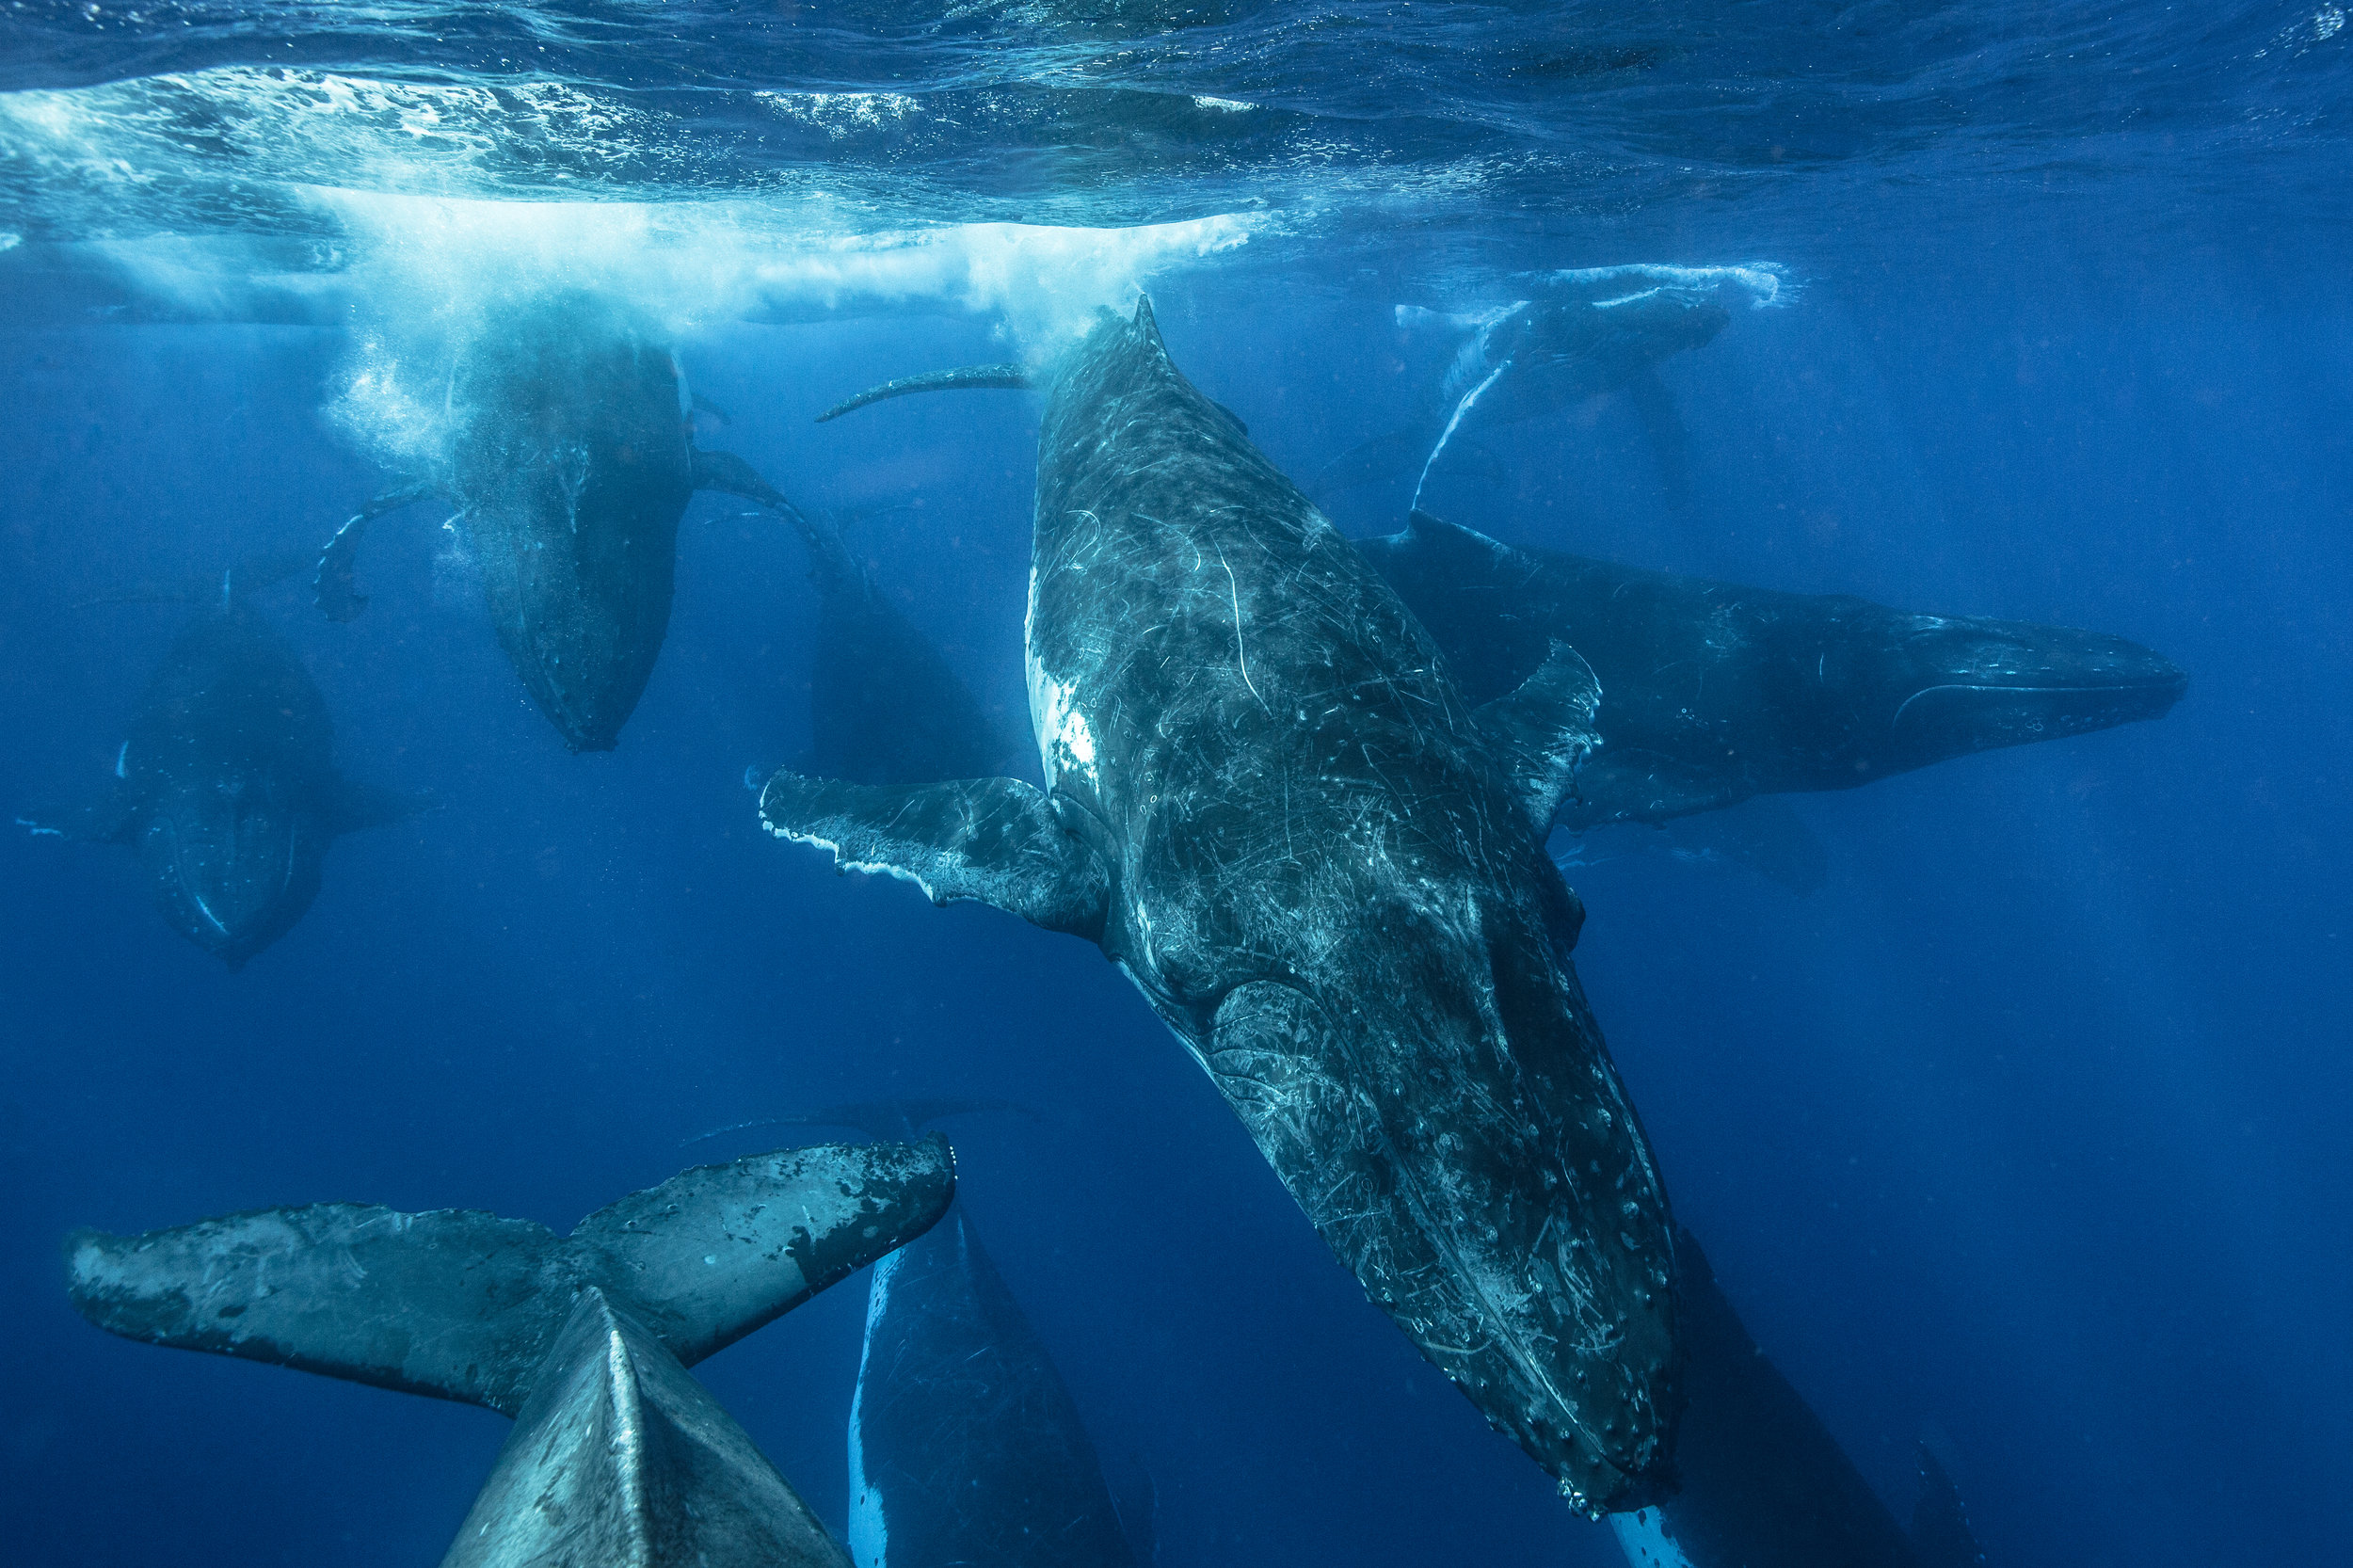 Adult male whales compete against each other in a gigantic, multi-hour race known as a heat run. Started by the female in heat by slapping their fin along the surface of the water, the males jostle for position behind her.